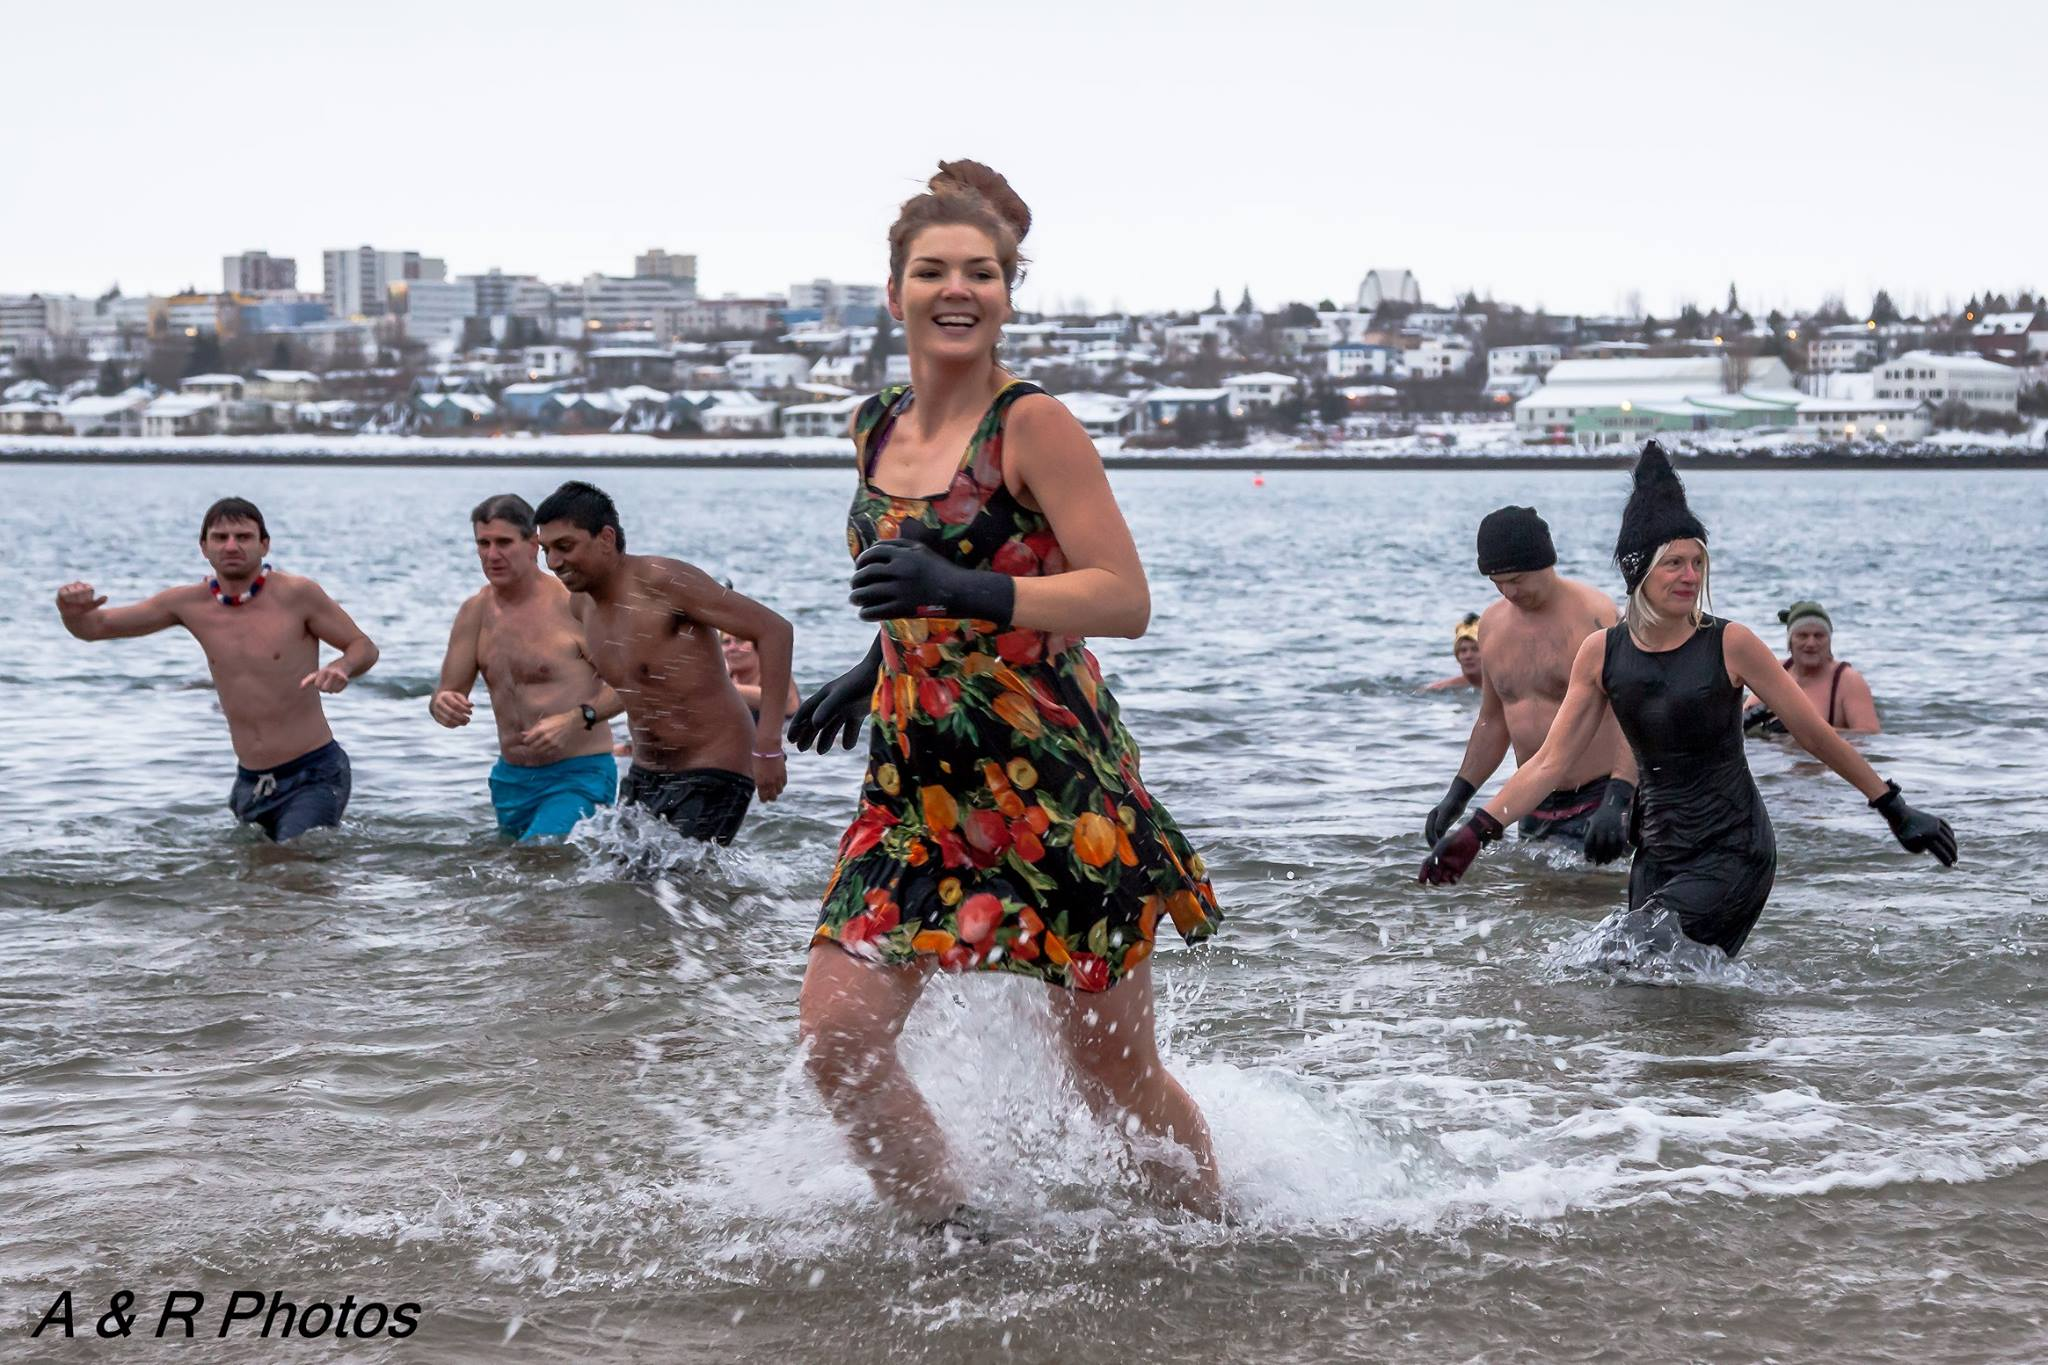 Swim with the locals in the sea at Nauthólsvík in Reykjavík - A&R Photos